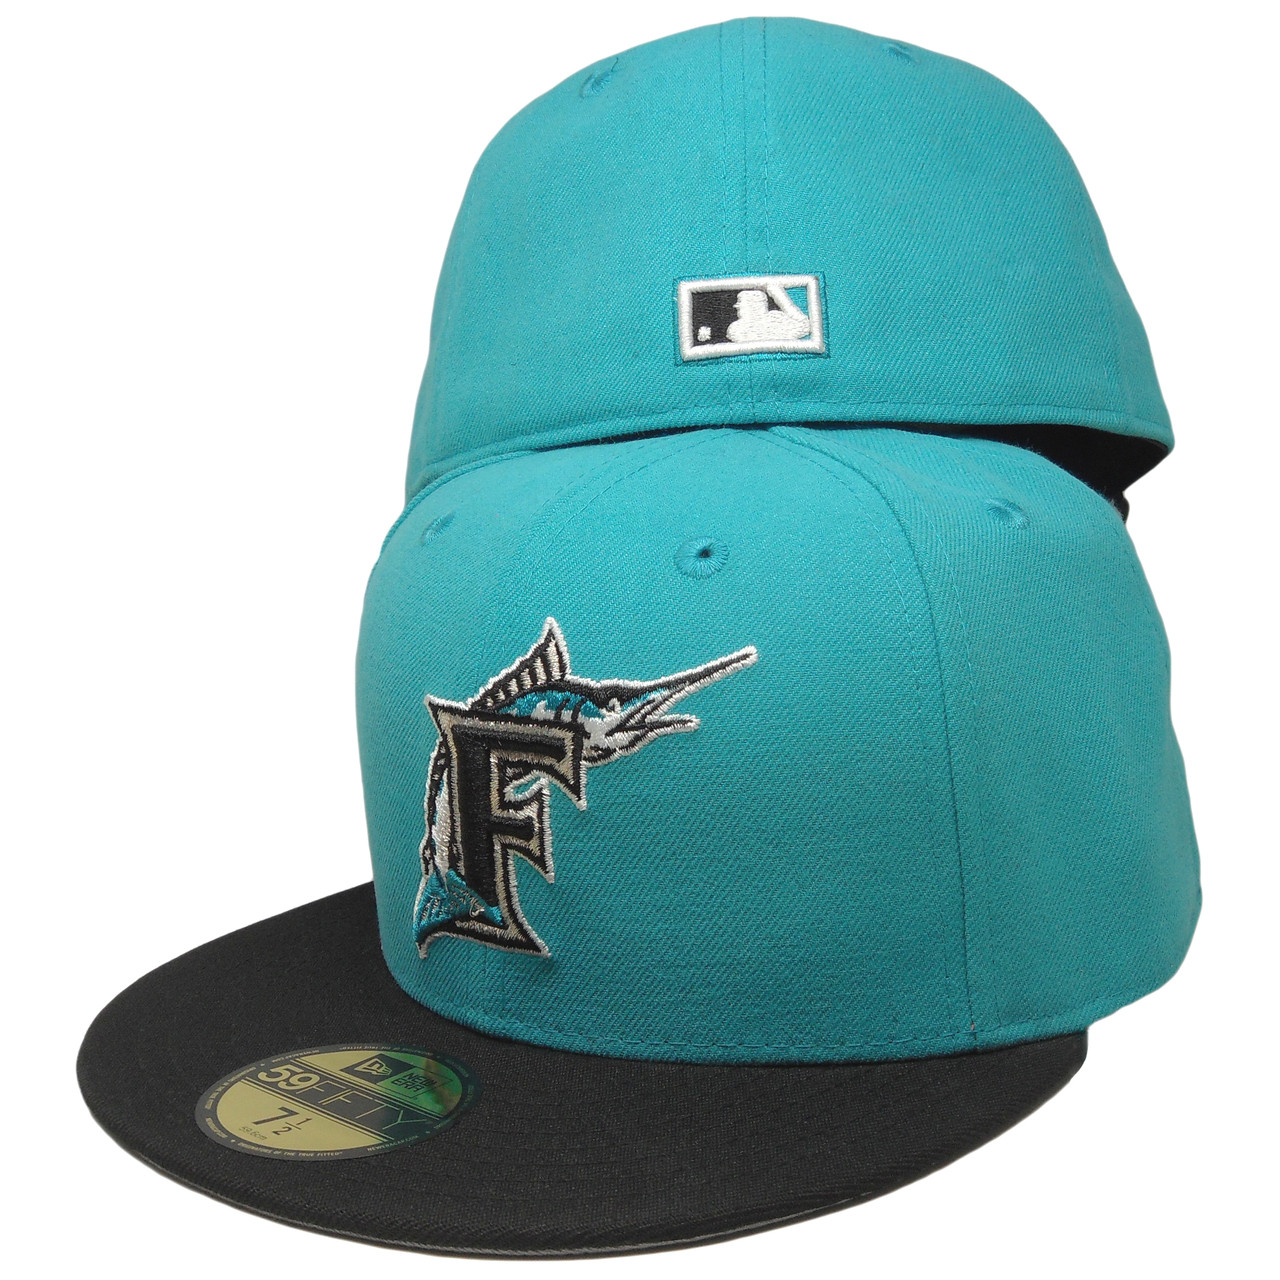 006cdf84671a22 Florida Marlins New Era K93-96 59Fifty Fitted Hat - Teal, Black, Silver -  ECapsUnlimited.com